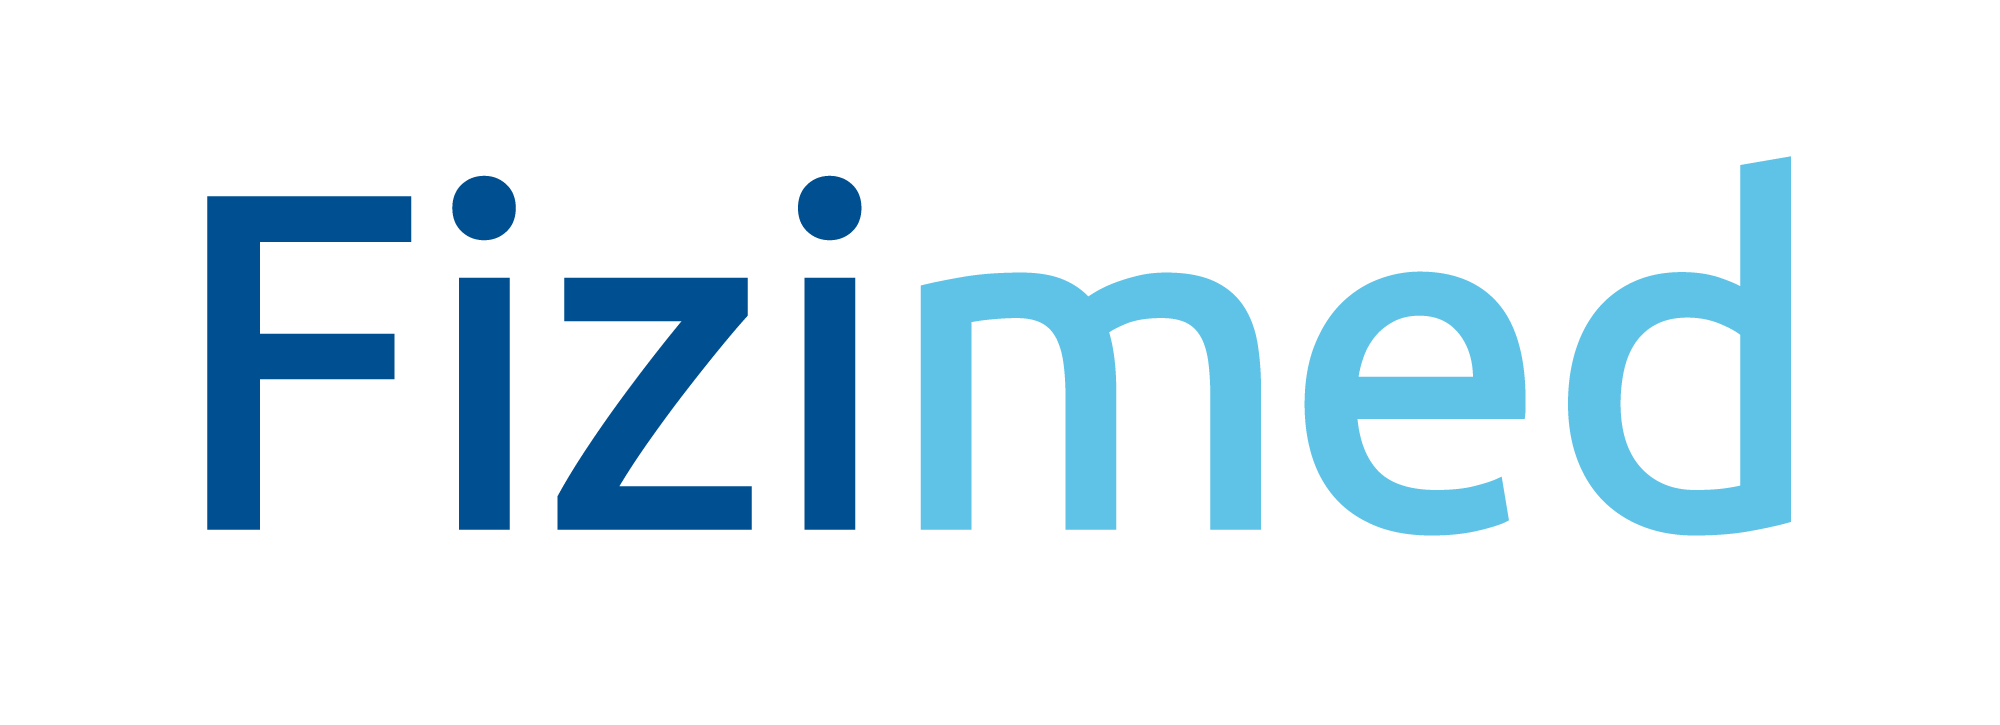 Logo women's health enterprise Fizimed